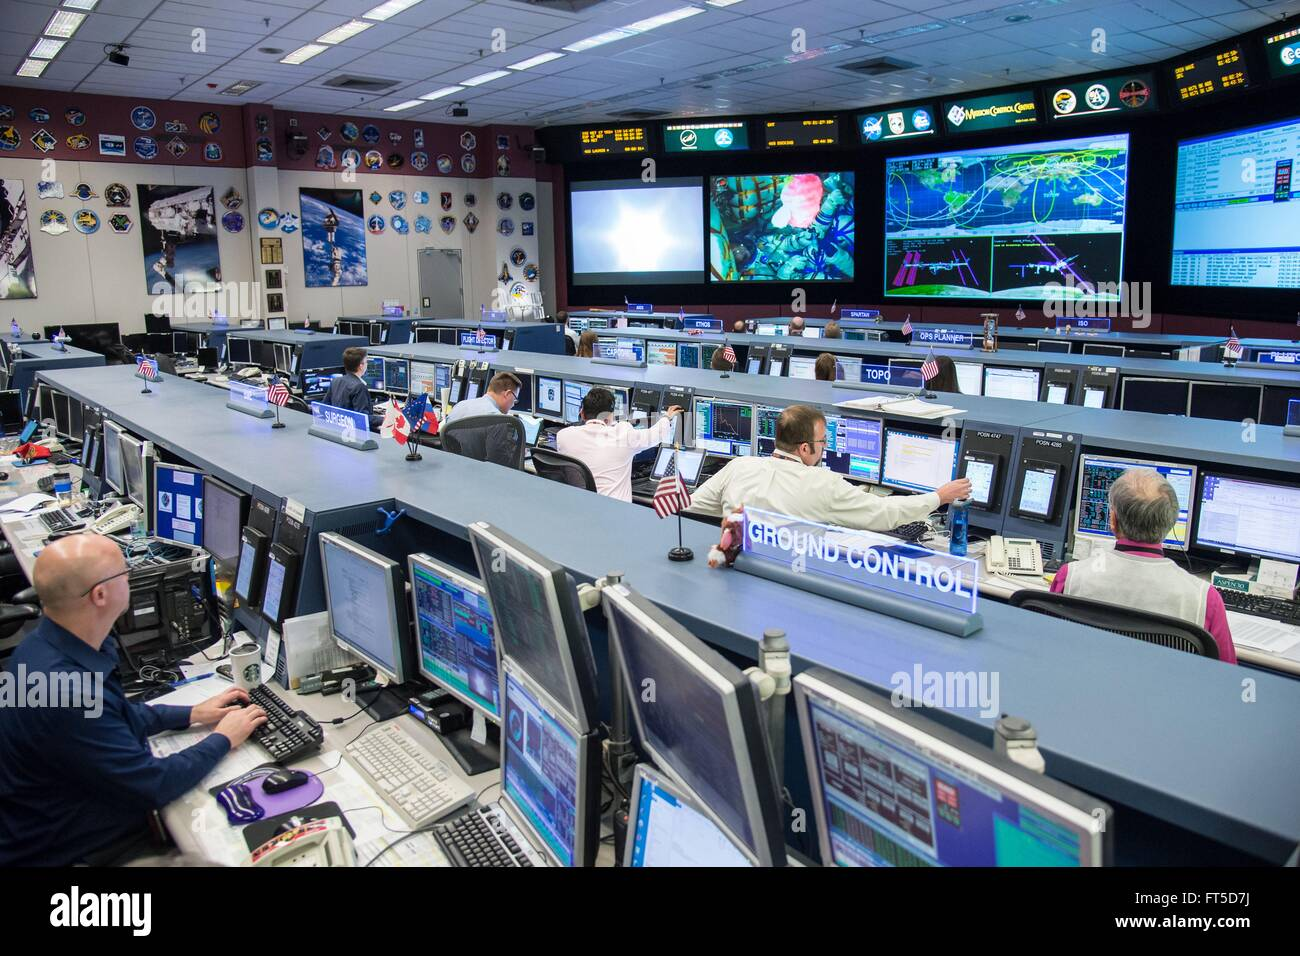 NASA Expedition 47/48 flight control team monitor the launch of the Soyuz TMA-20M spacecraft at mission control - Stock Image